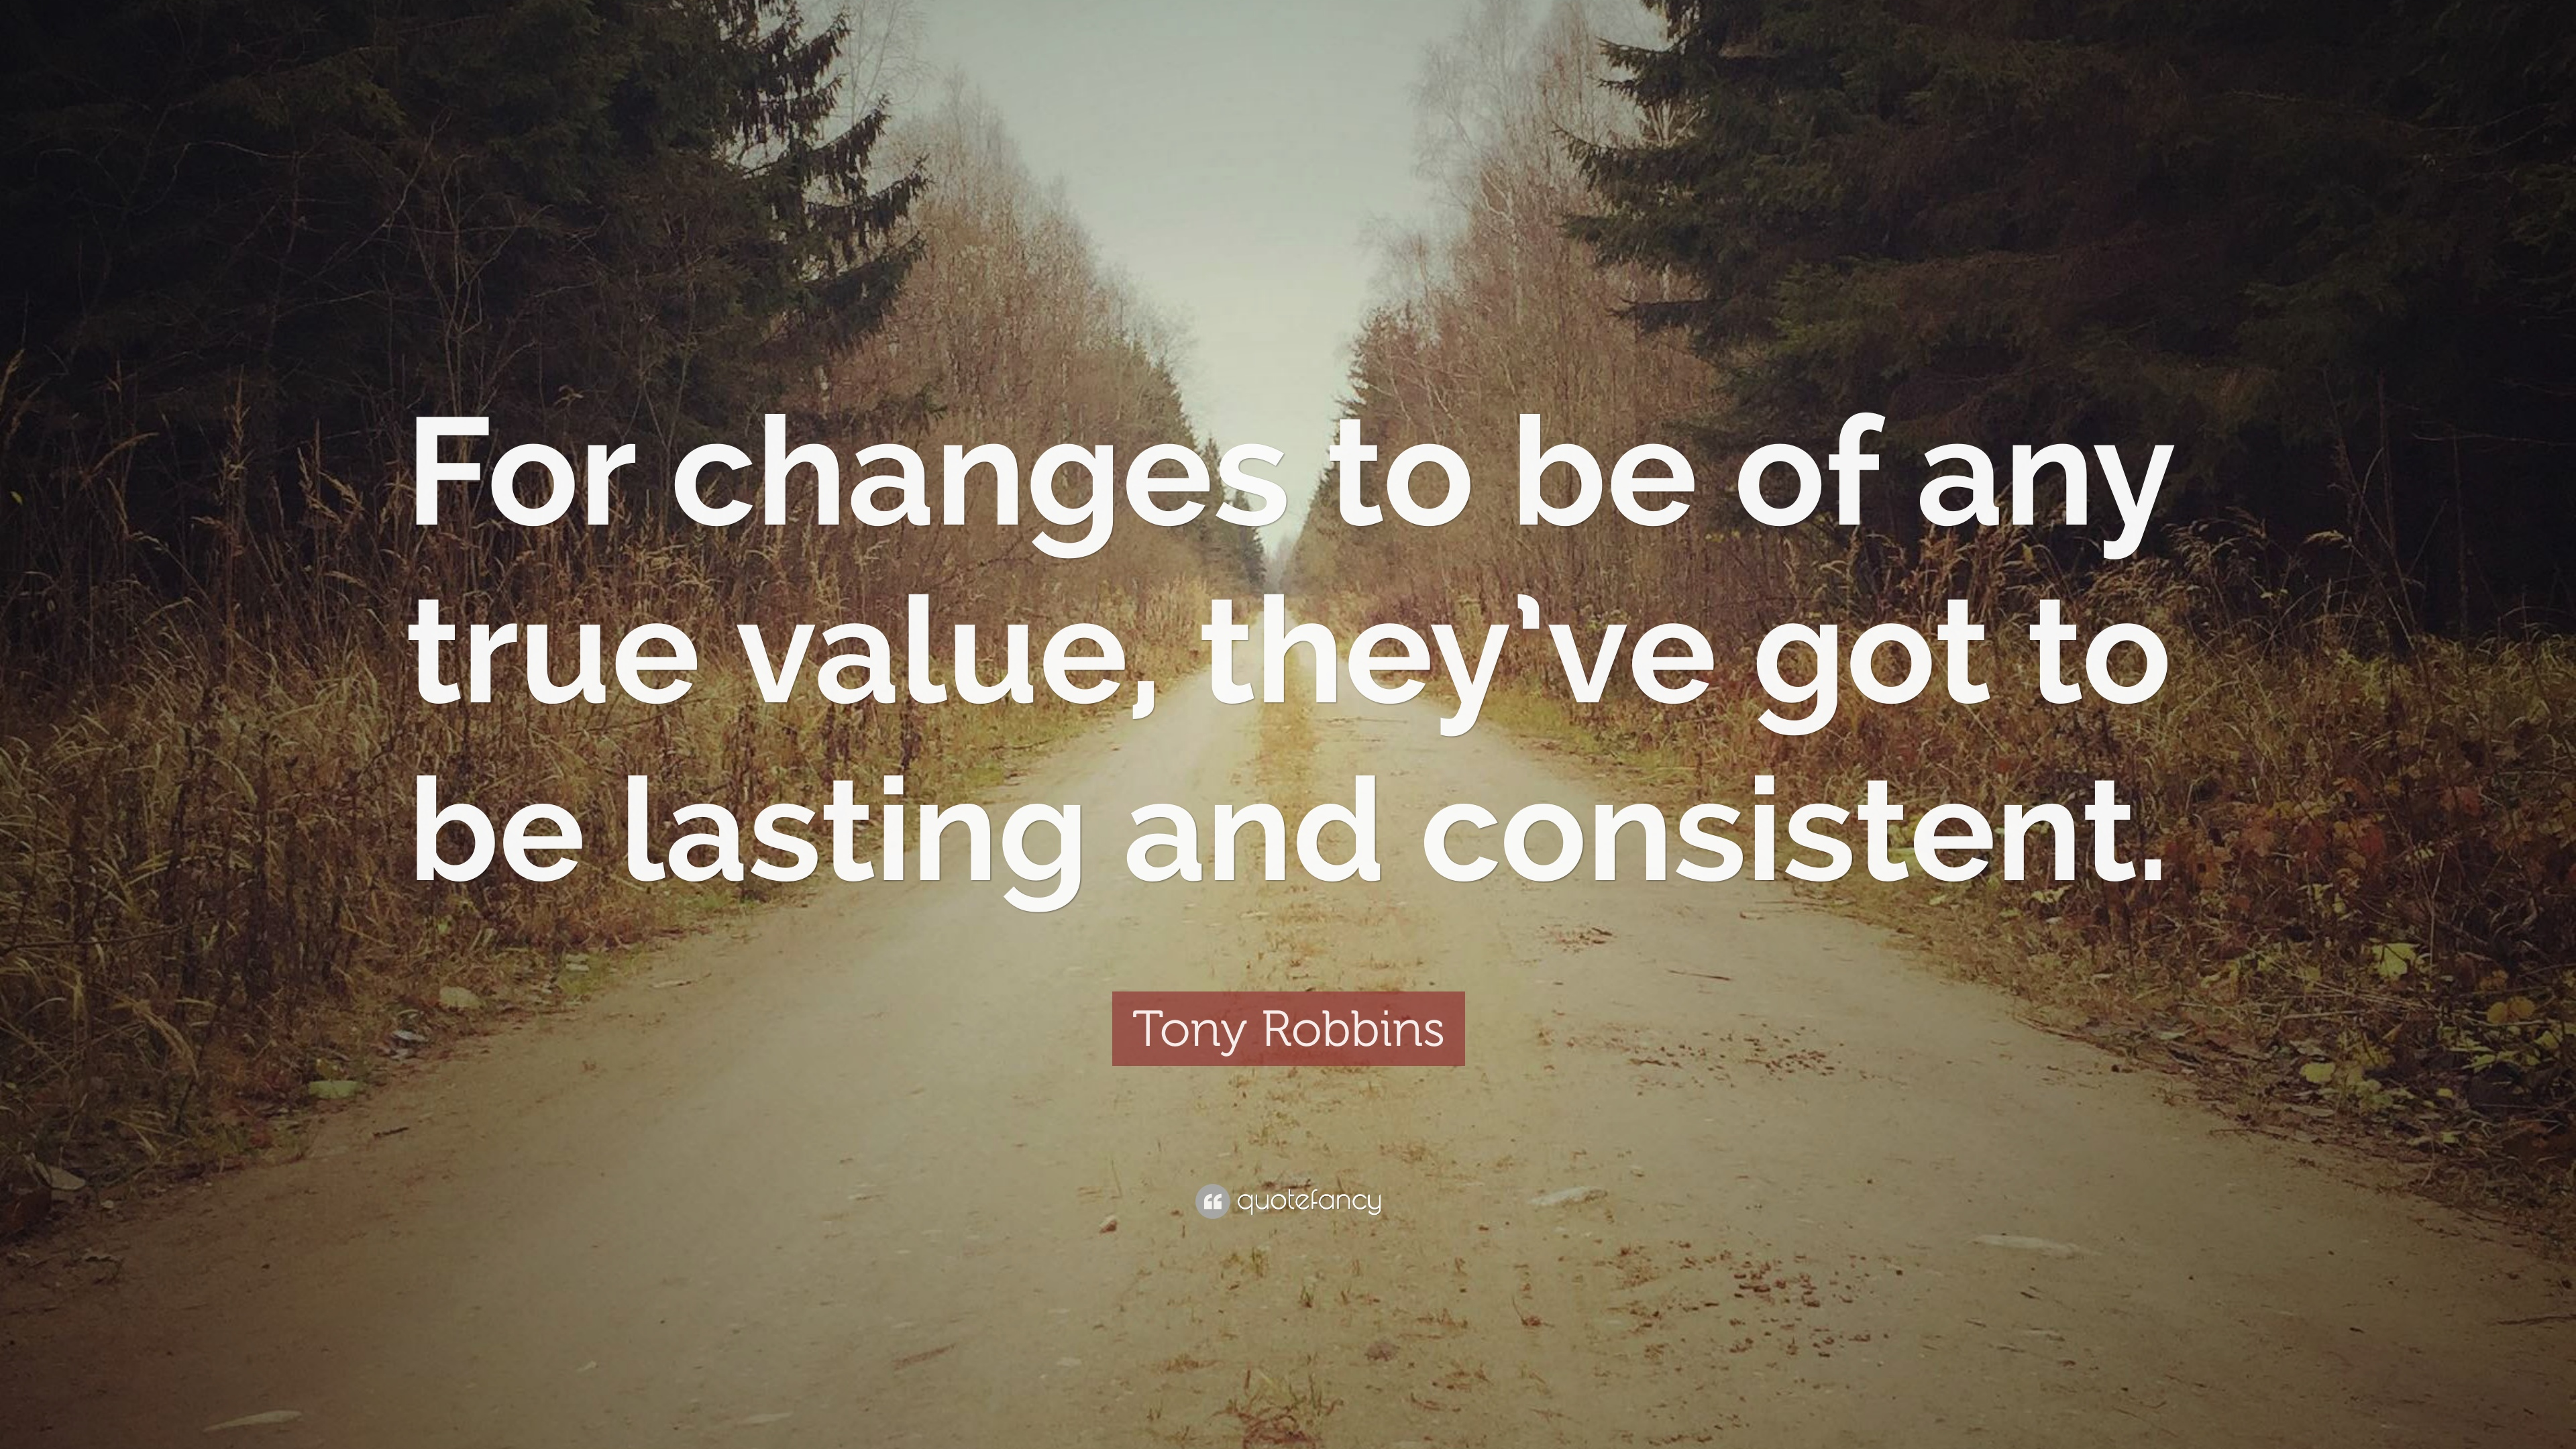 Tony Robbins Quote For Changes To Be Of Any True Value Theyve